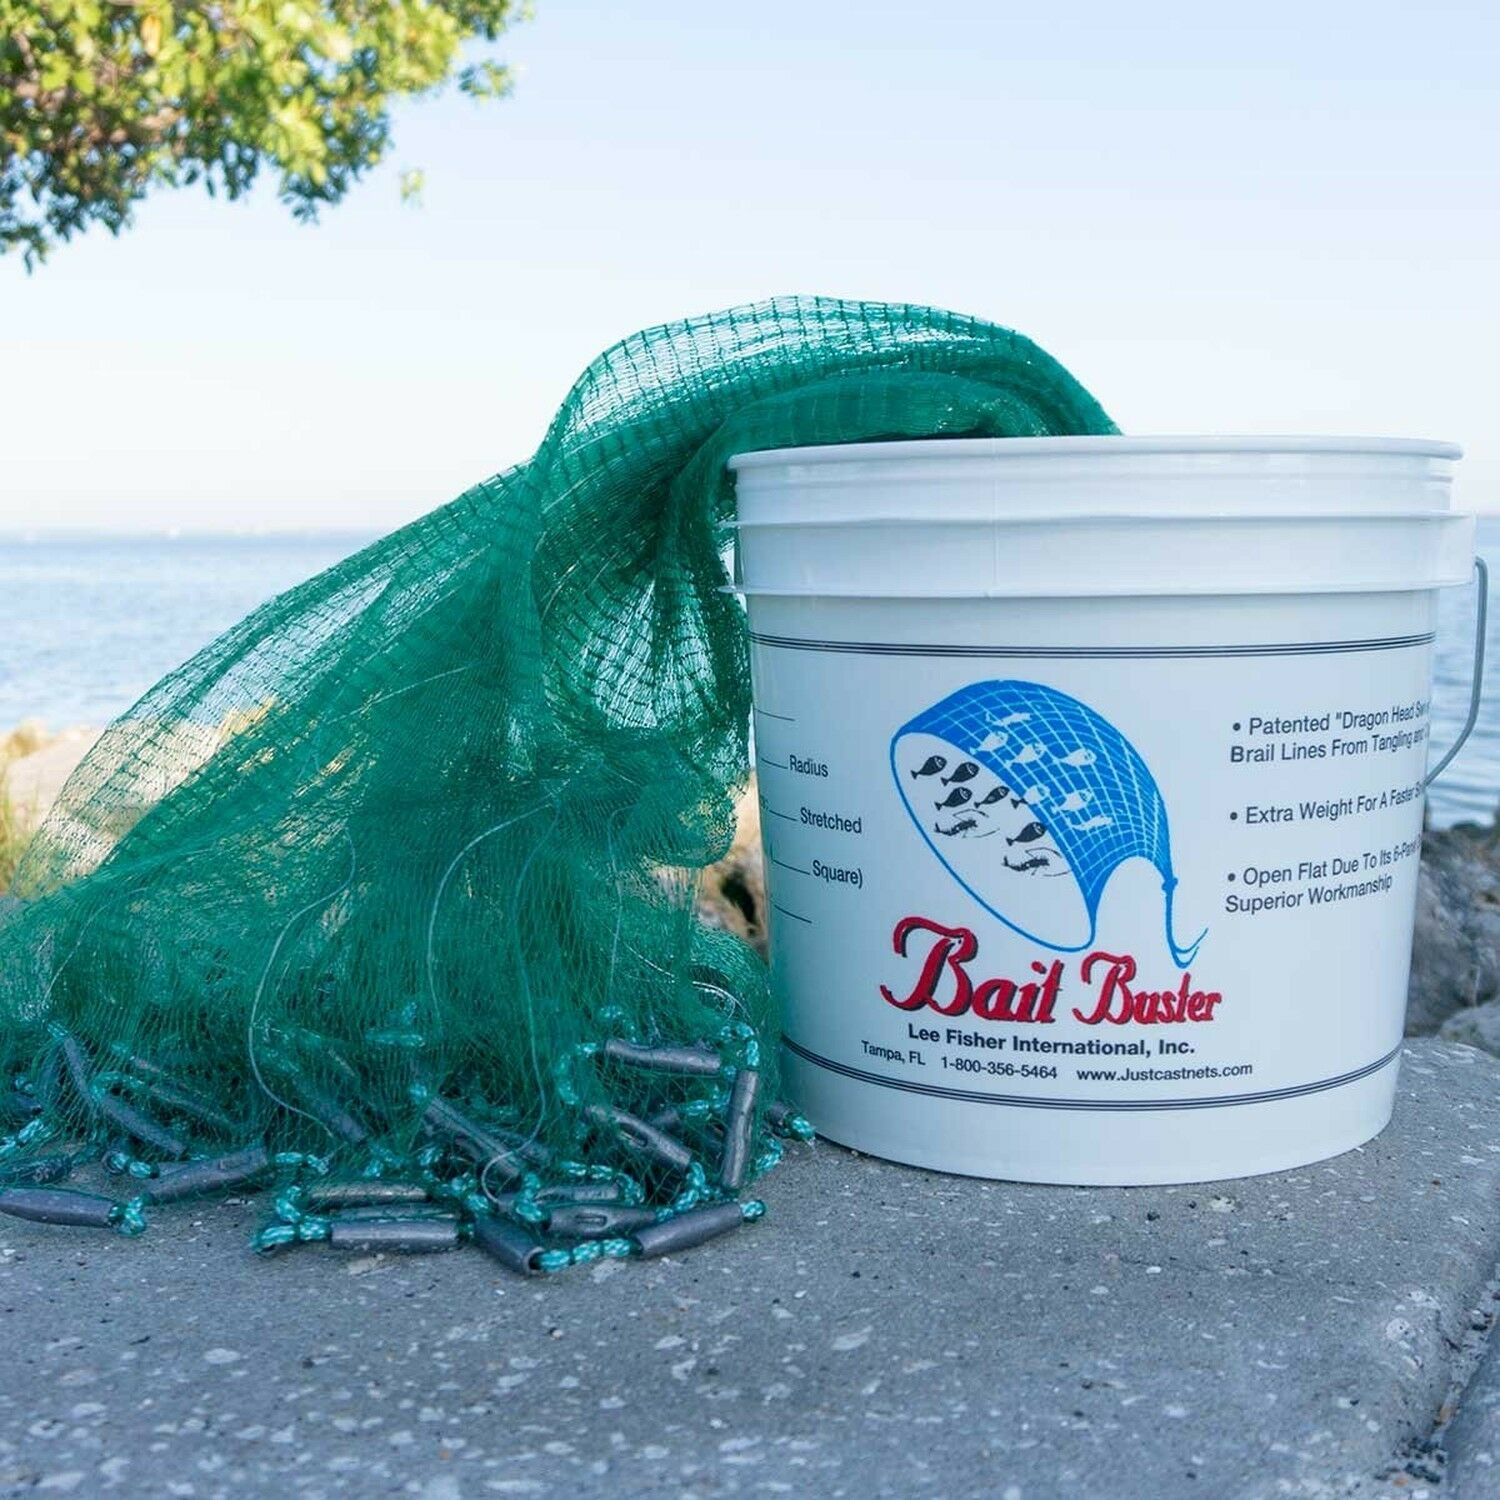 Bait Buster Pro Grade Minnow Cast Net  with 1 4  Squared Mesh - 8 Foot Radius  the lowest price